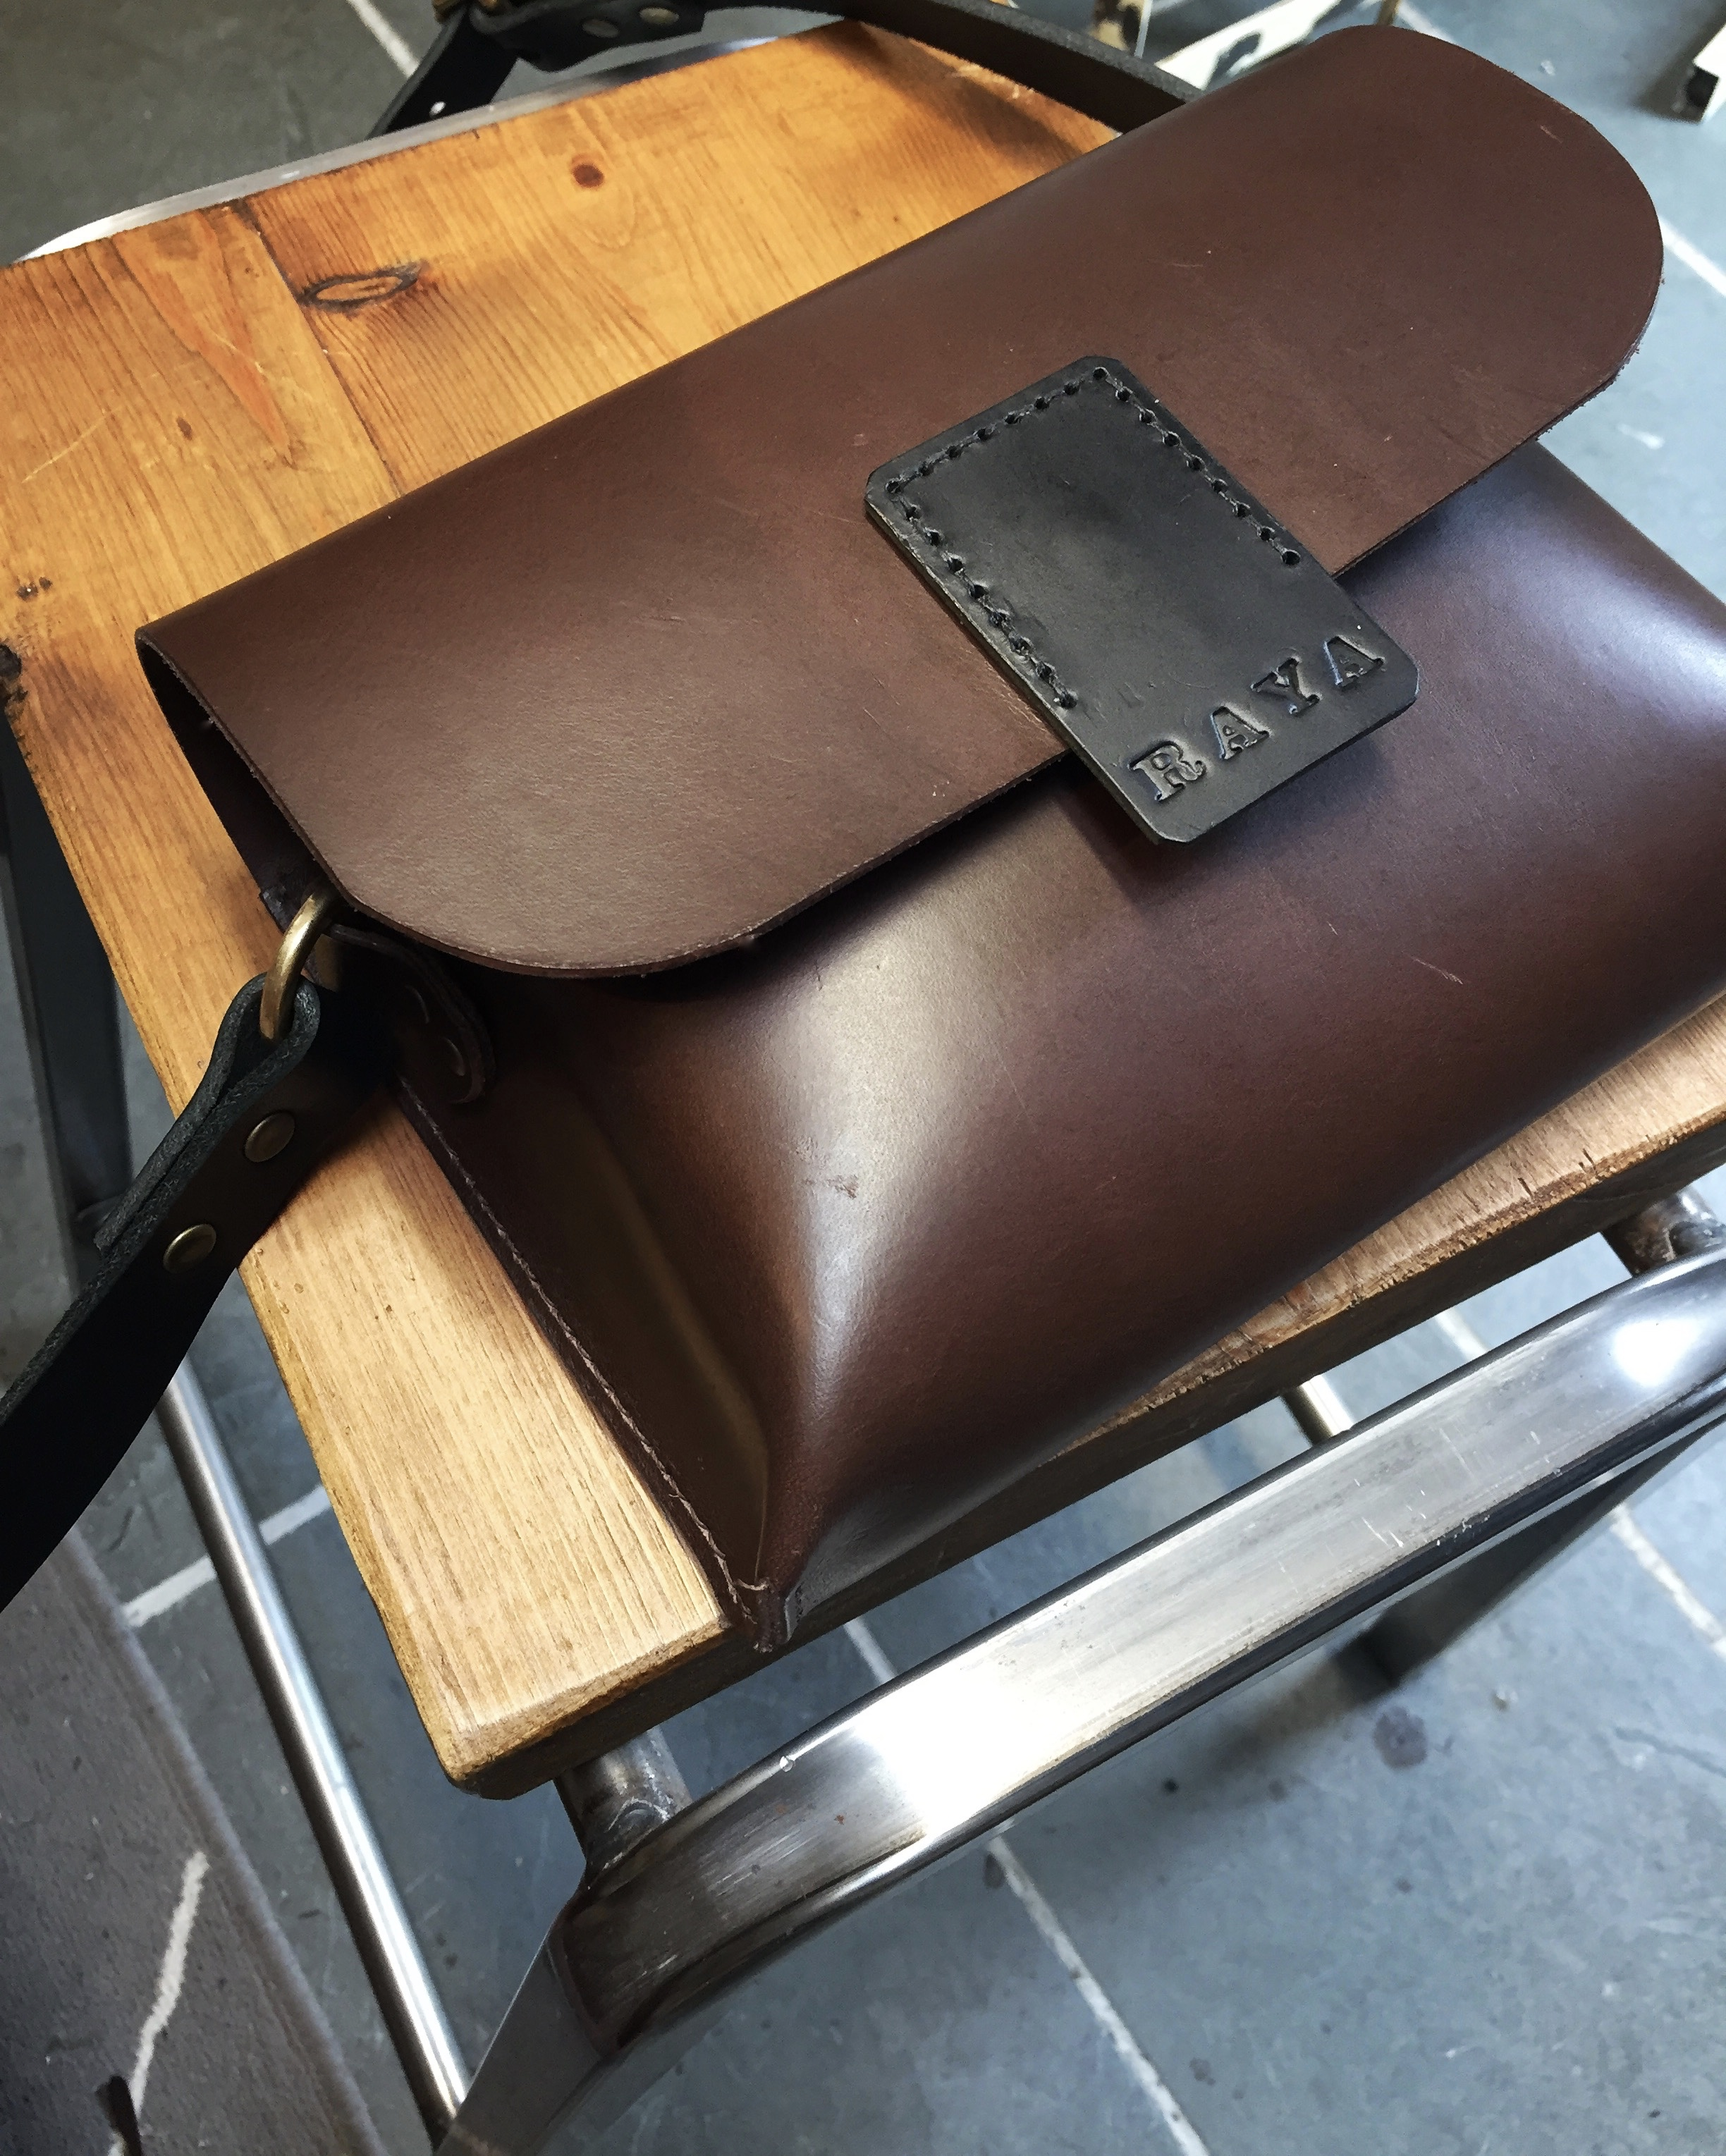 Lovely contrast in the Chestnut and Black vegetable tanned leathers_